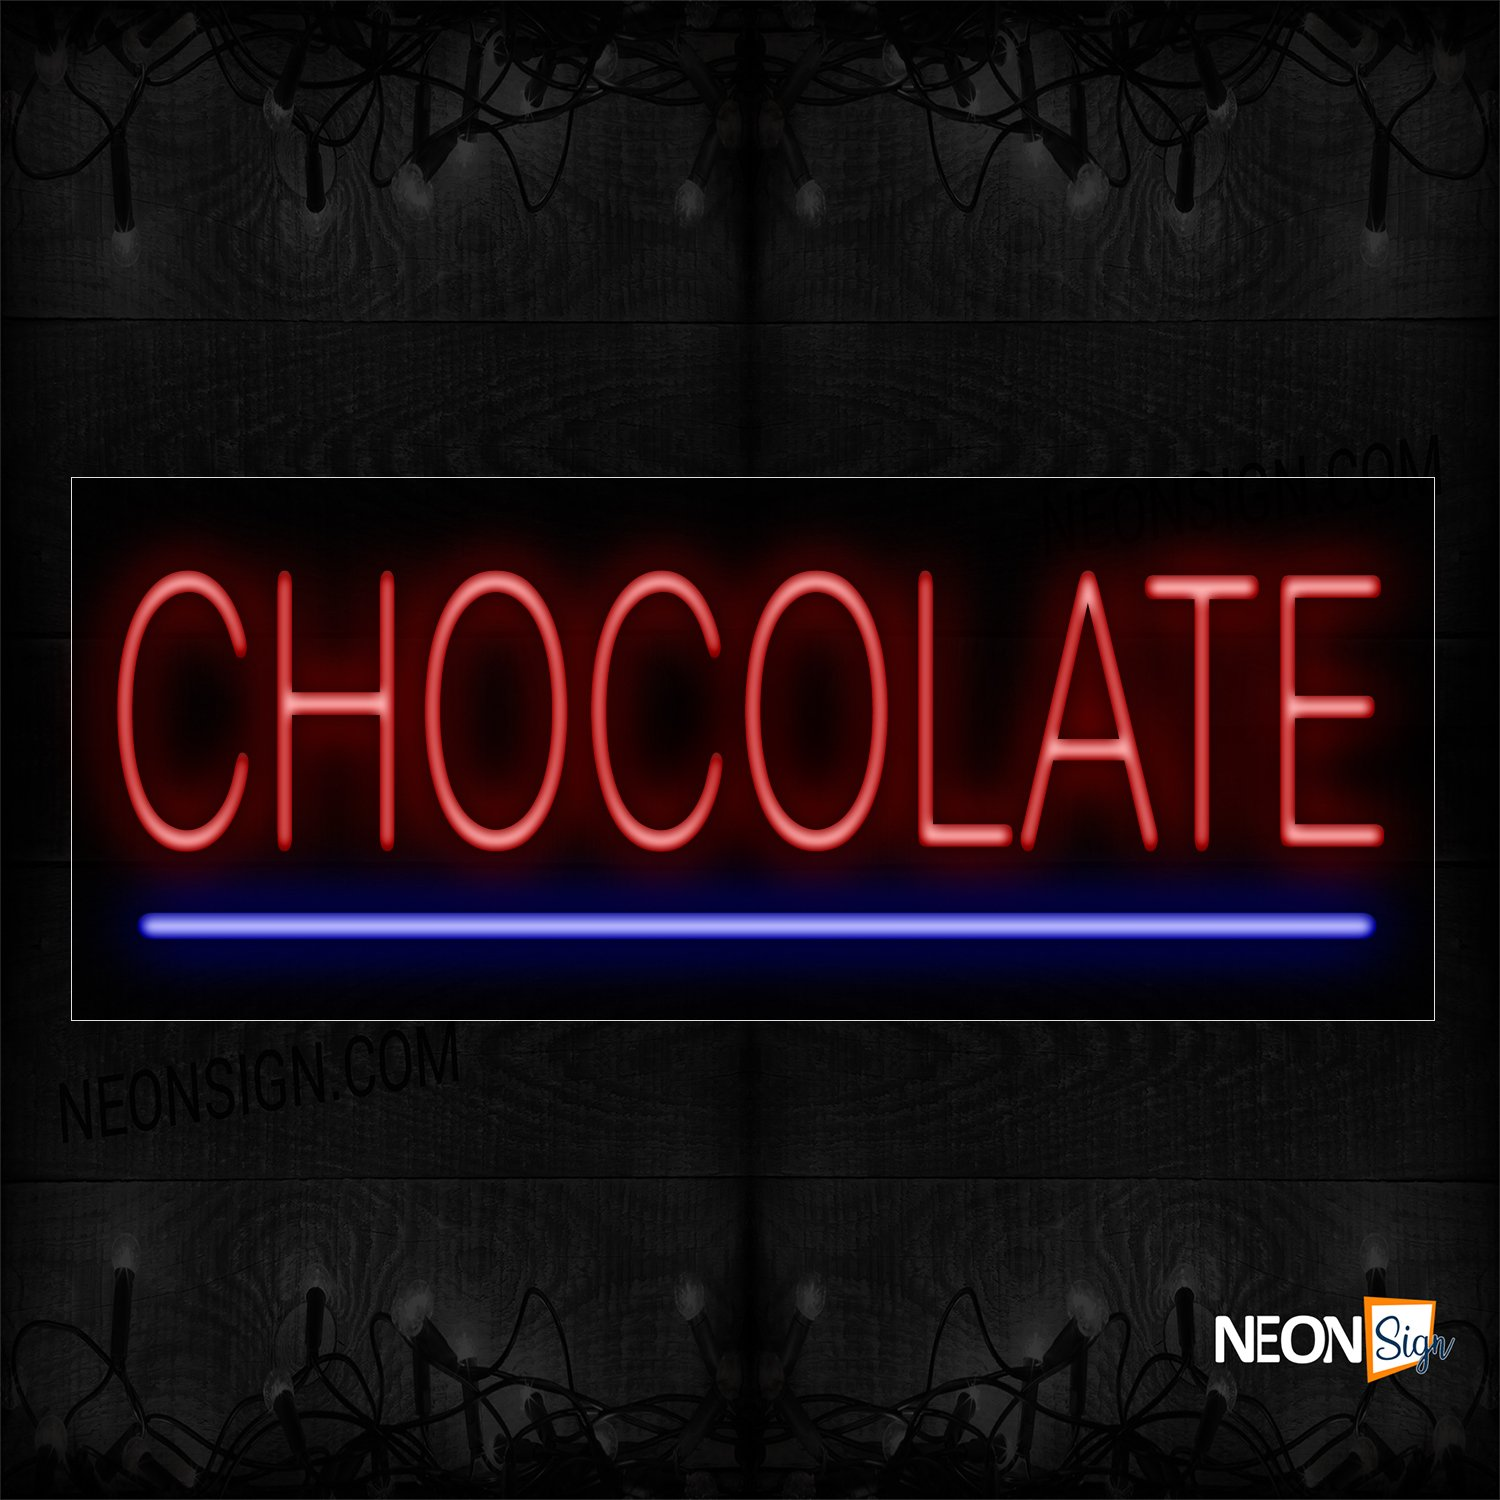 Image of 12361 Chocolate In Red With Blue Line Neon Sign_13x32 Black Backing